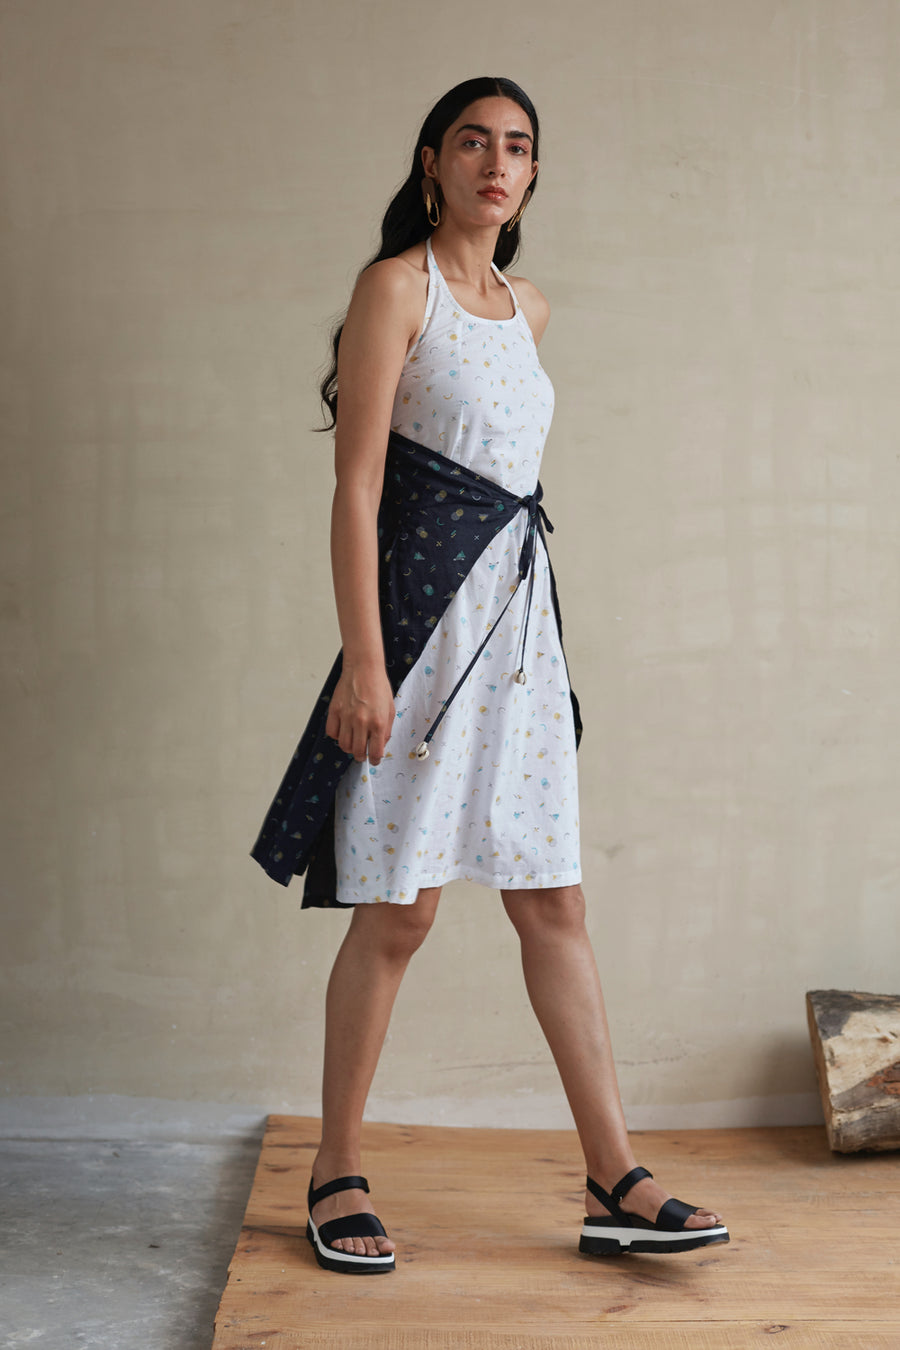 Strappy Halter Summer Dress - Ethical made fashion - onlyethikal